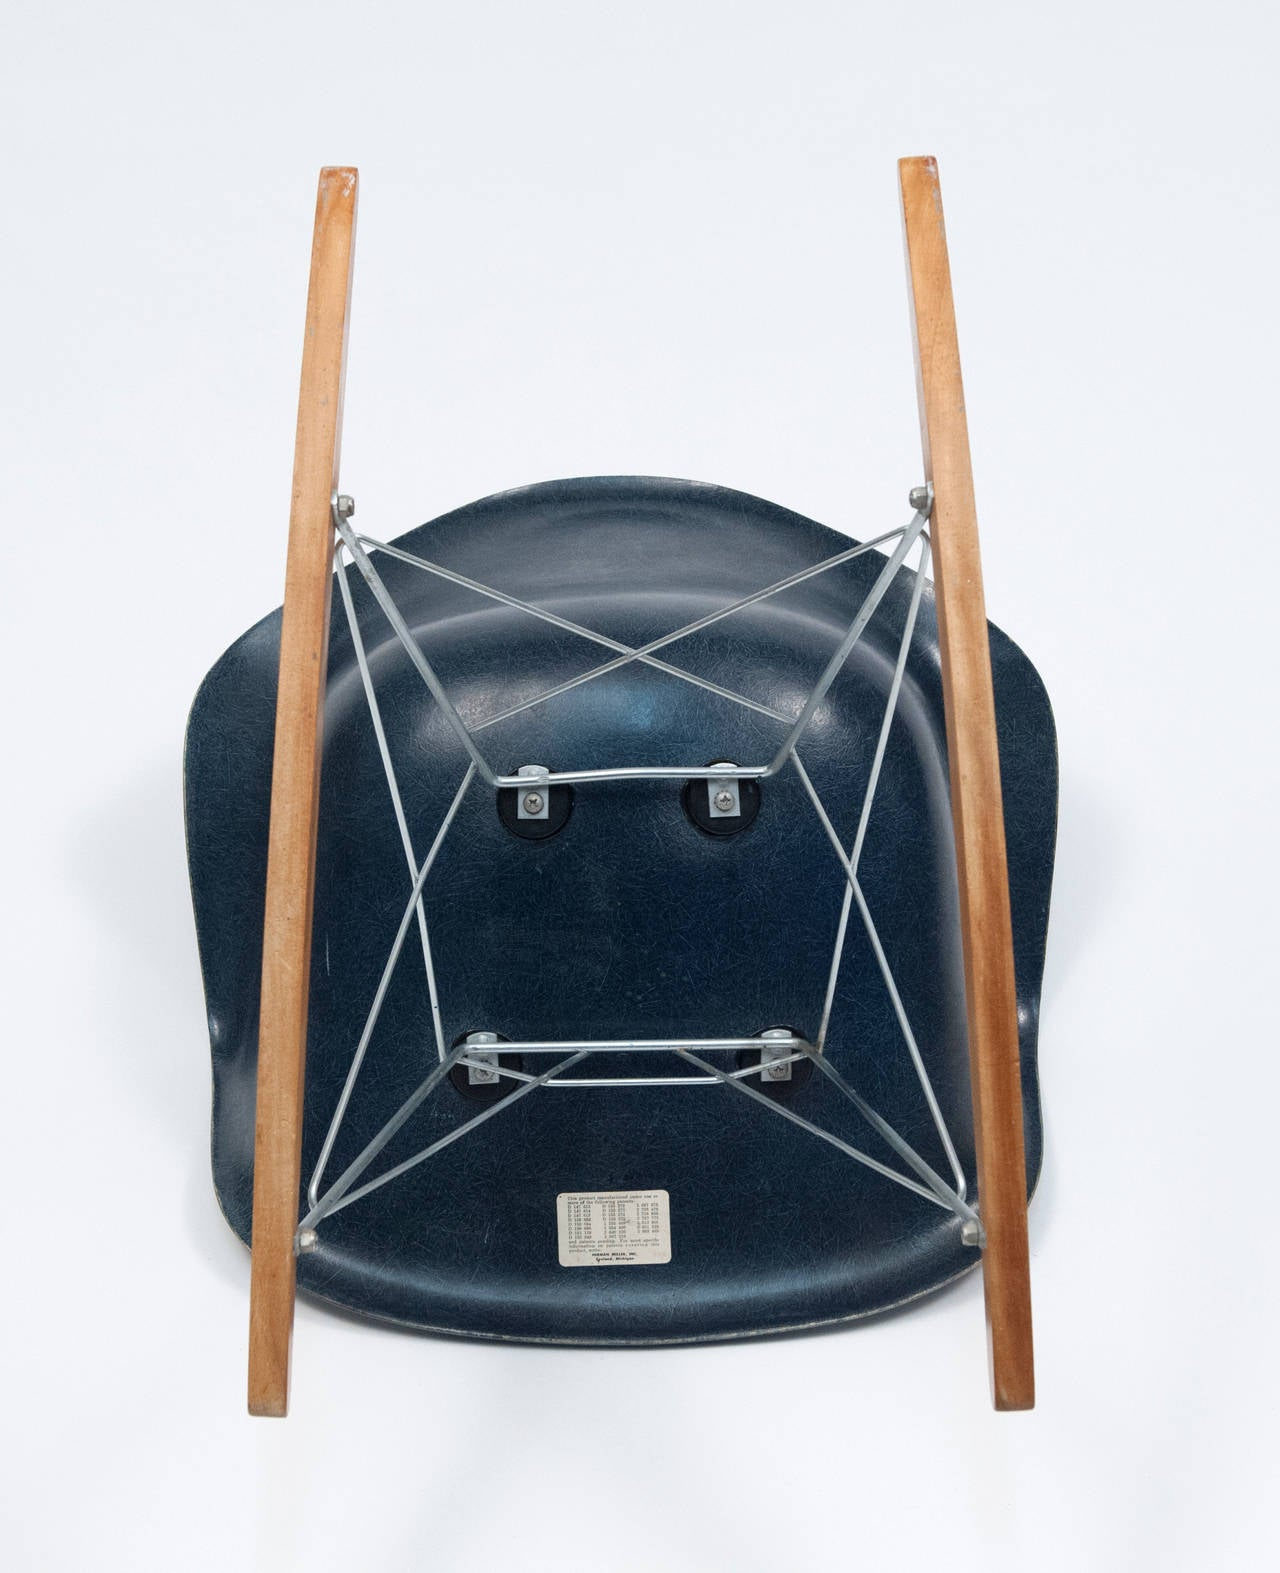 Very Impressive portraiture of Eames Navy Blue Shell Herman Miller Rocking Chair 1962 For Sale at  with #9A6231 color and 1280x1573 pixels